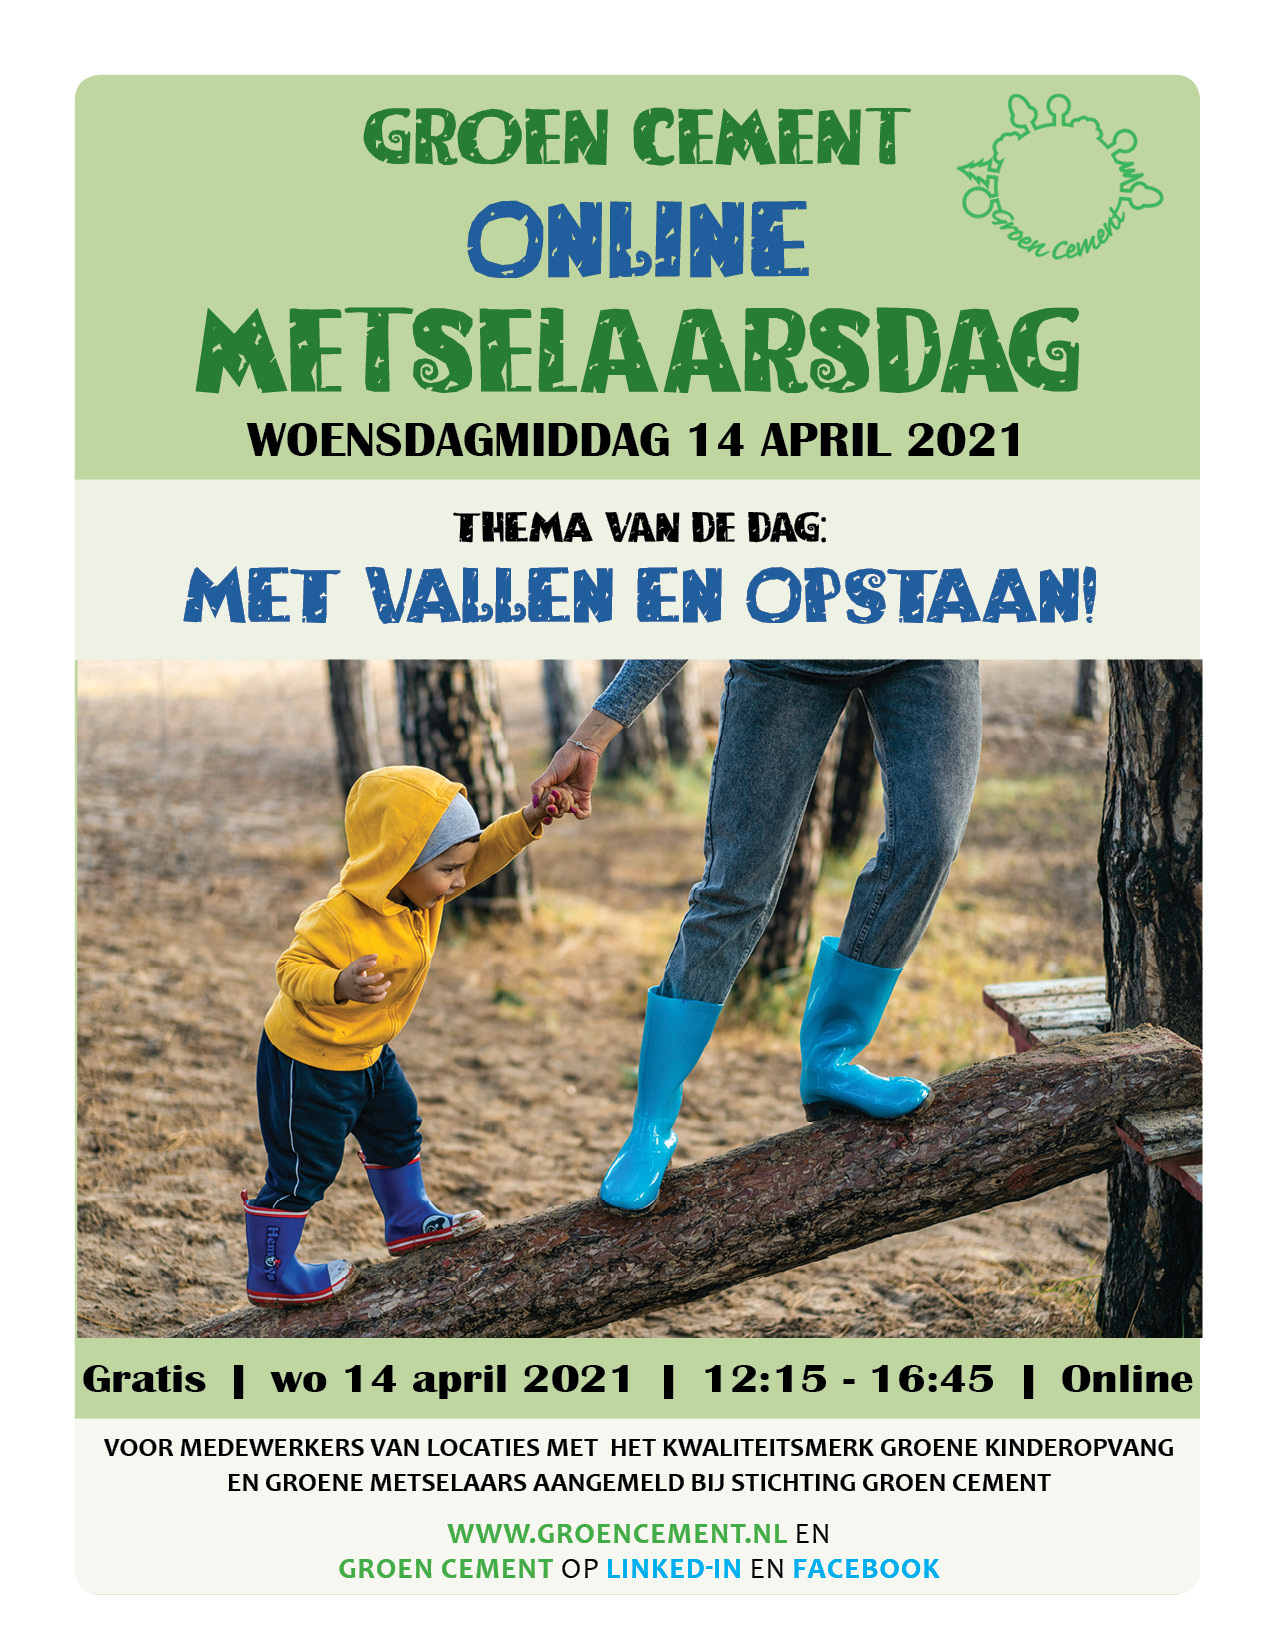 Save the date Metselaarsdag 2021 Online 1